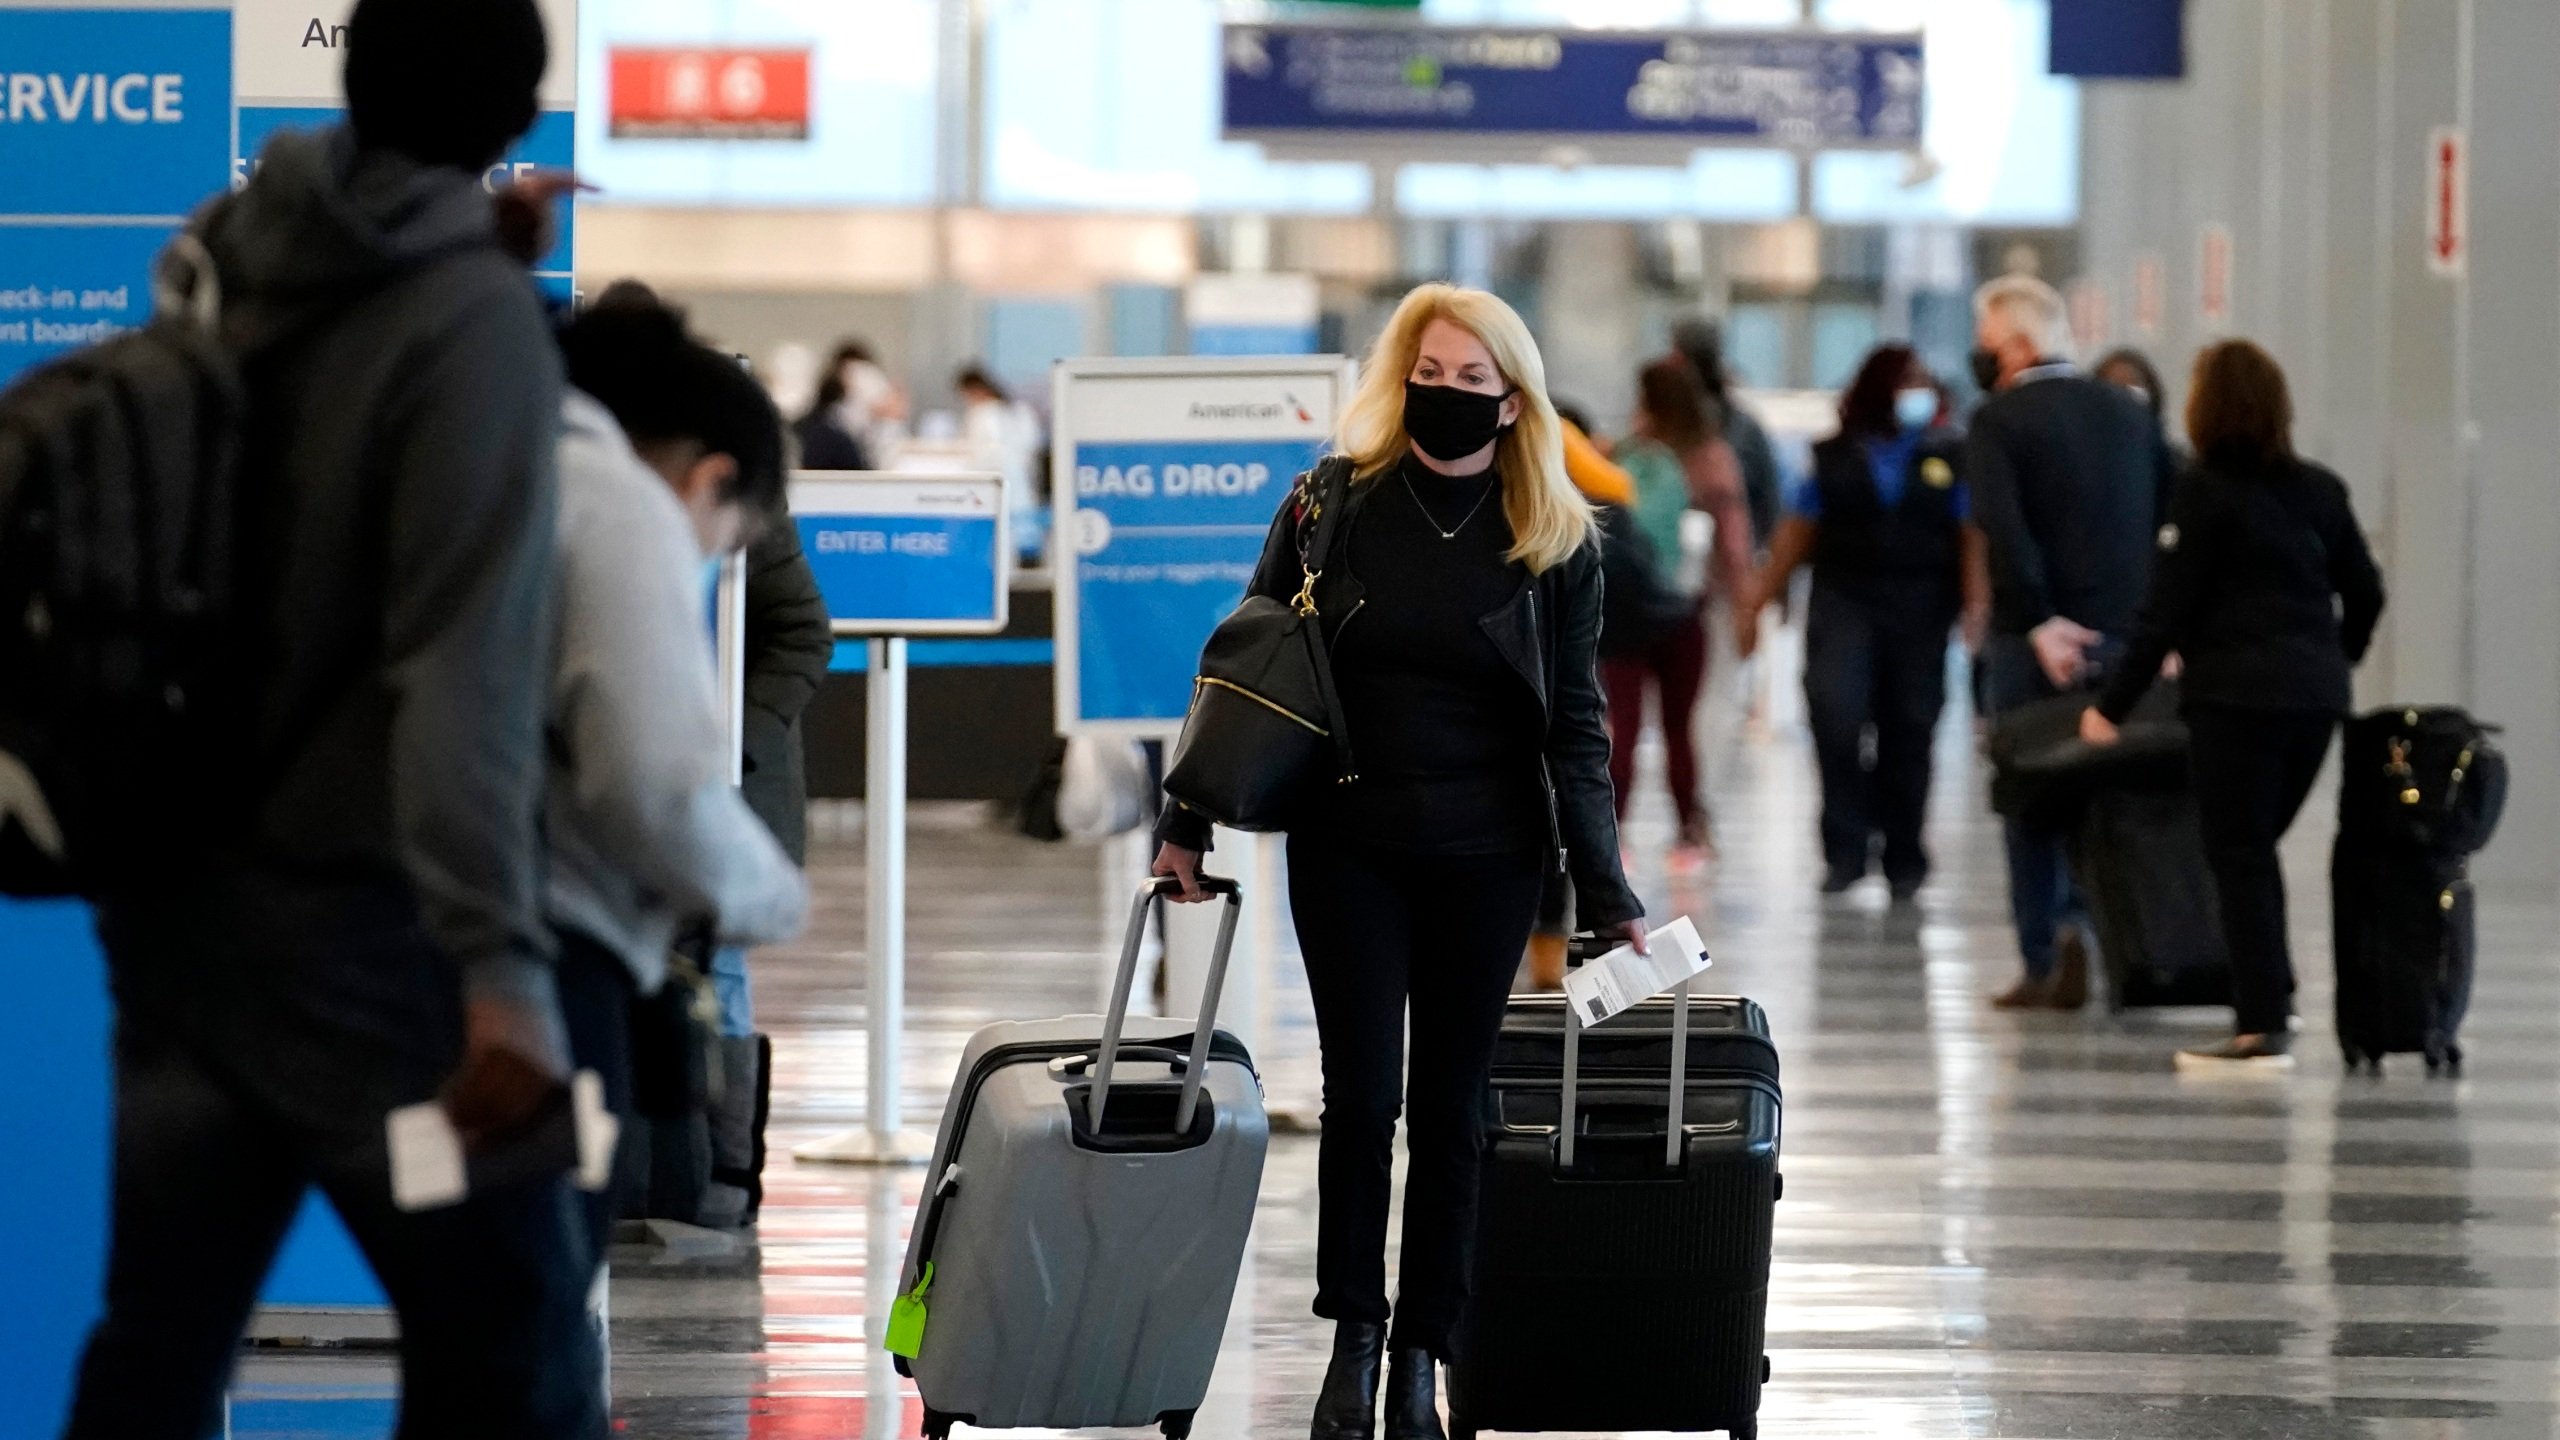 In this Sunday, Nov. 29, 2020 file photo, a traveler wears a mask as she walks through Terminal 3 at O'Hare International Airport in Chicago. (AP Photo/Nam Y. Huh, File)